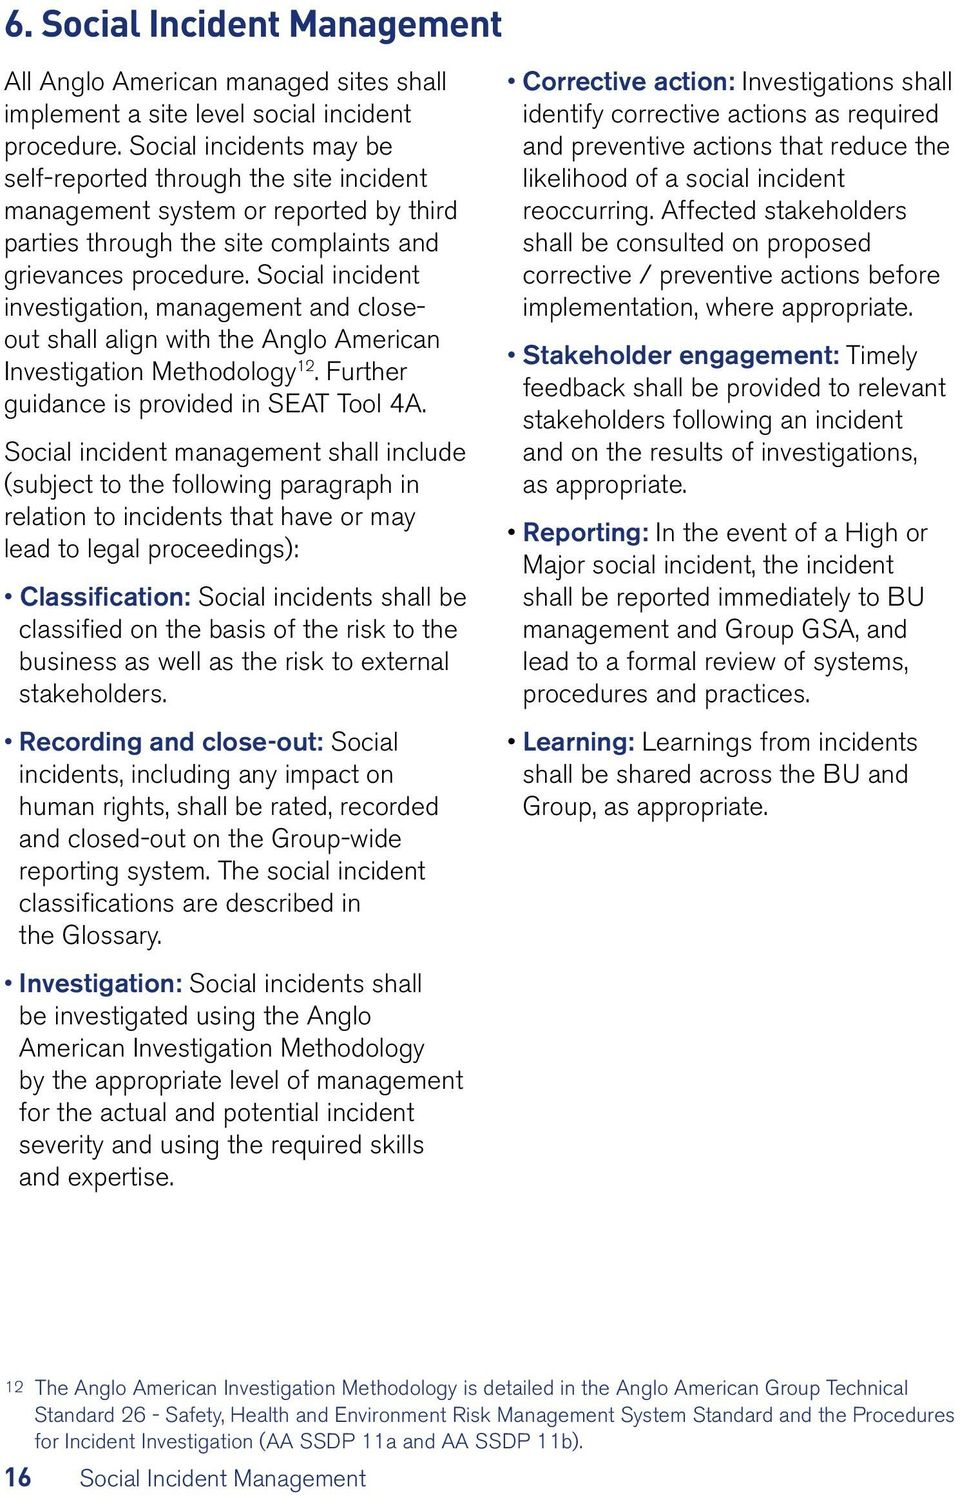 Social incident investigation, management and closeout shall align with the Anglo American Investigation Methodology 12. Further guidance is provided in SEAT Tool 4A.